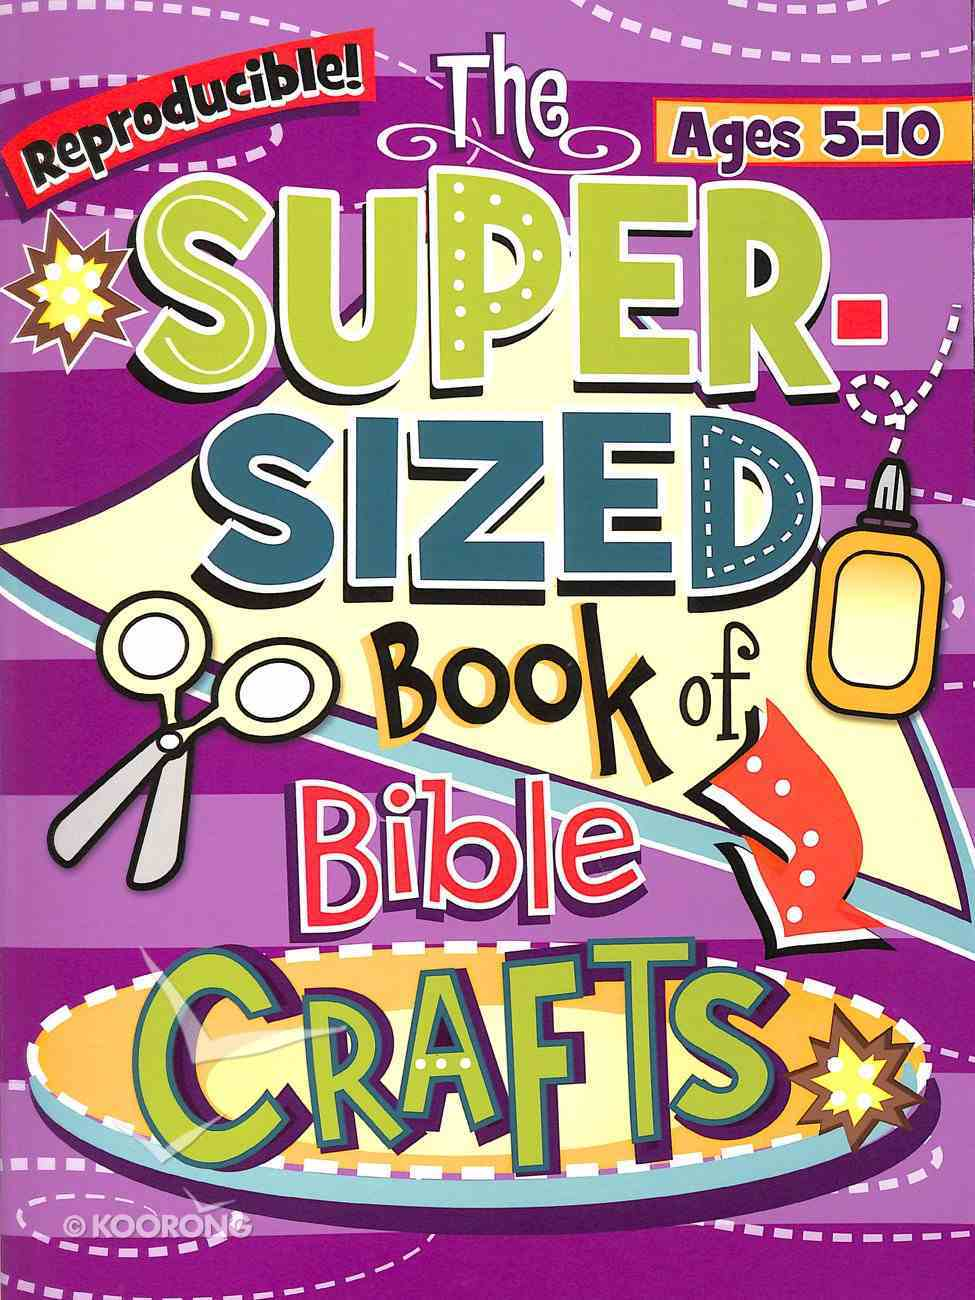 The Super Sized Book of Bible Crafts (Ages 5-10) Paperback